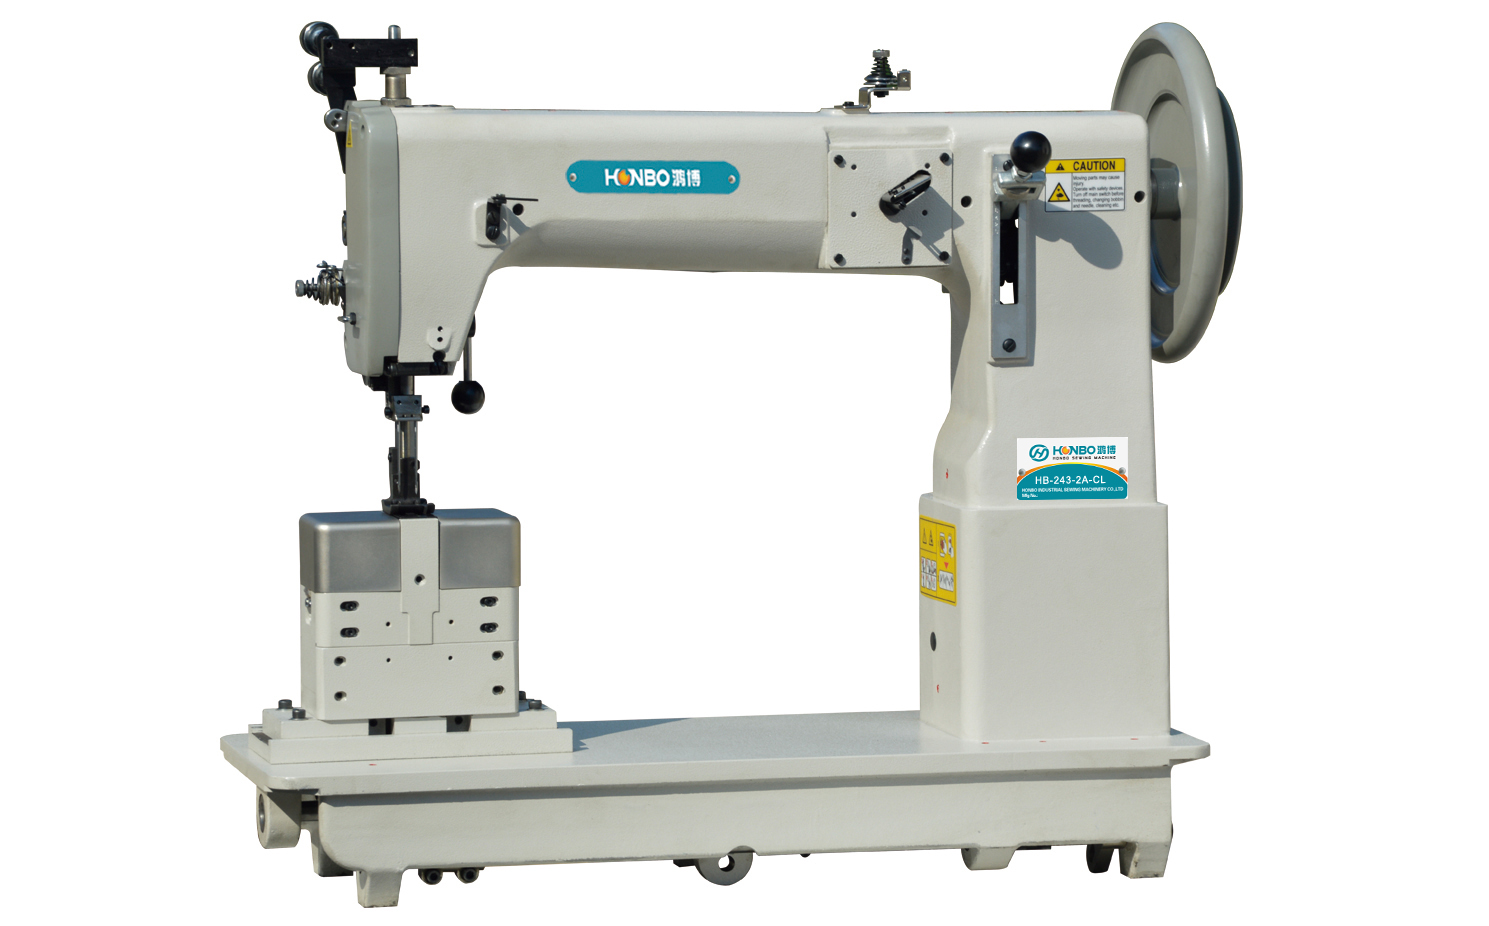 HB-243-2A-CL double-needle post-bed type sewing machine for extra-thick with comprehensive